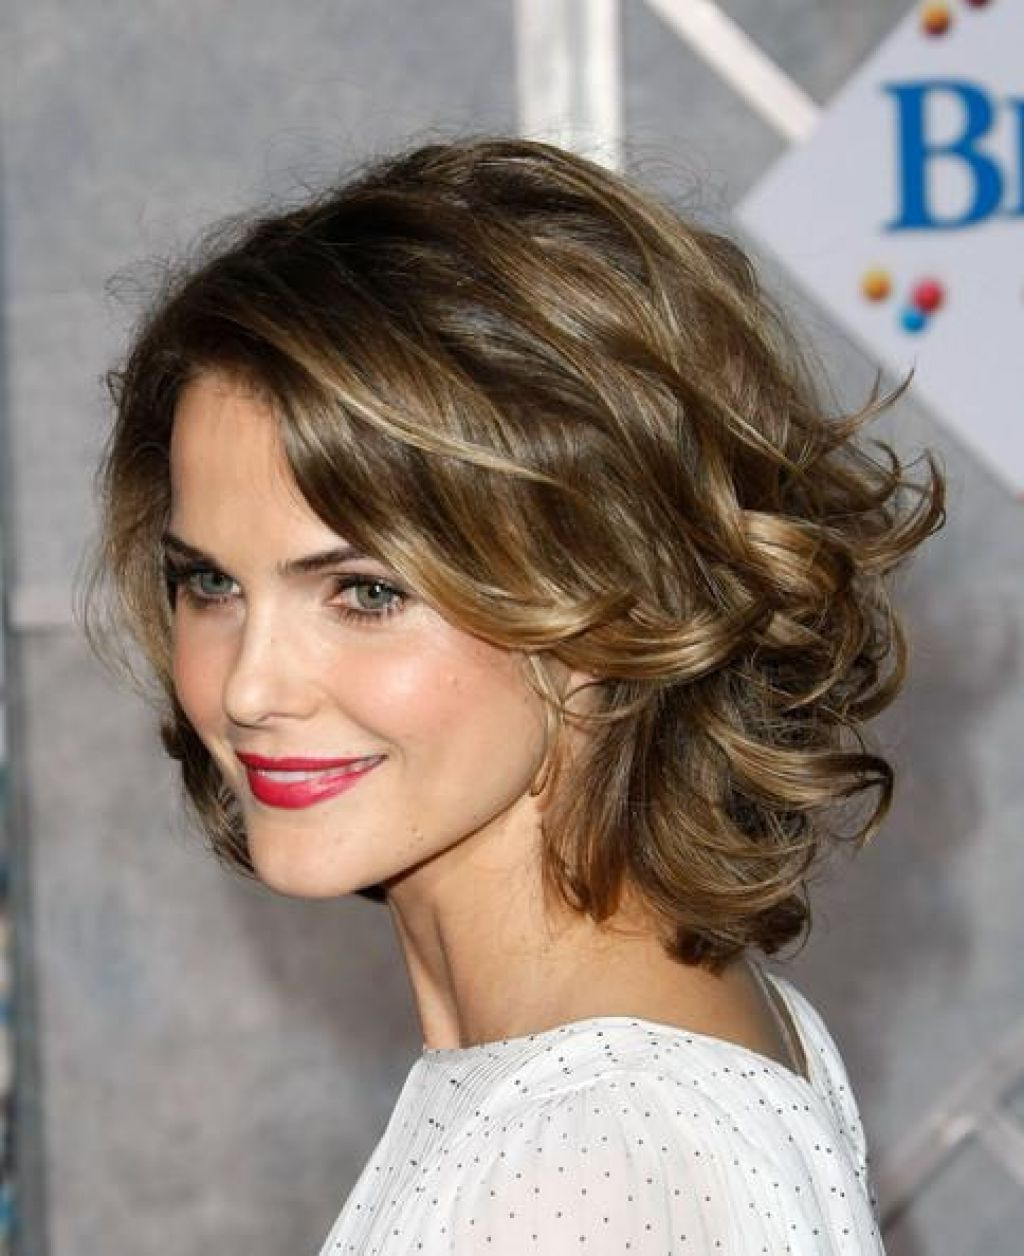 Hair Cuts : Remarkable Medium Short Curly Hairstyle Long Thick Throughout Widely Used Medium Haircuts For Wavy Hair And Round Faces (View 6 of 20)